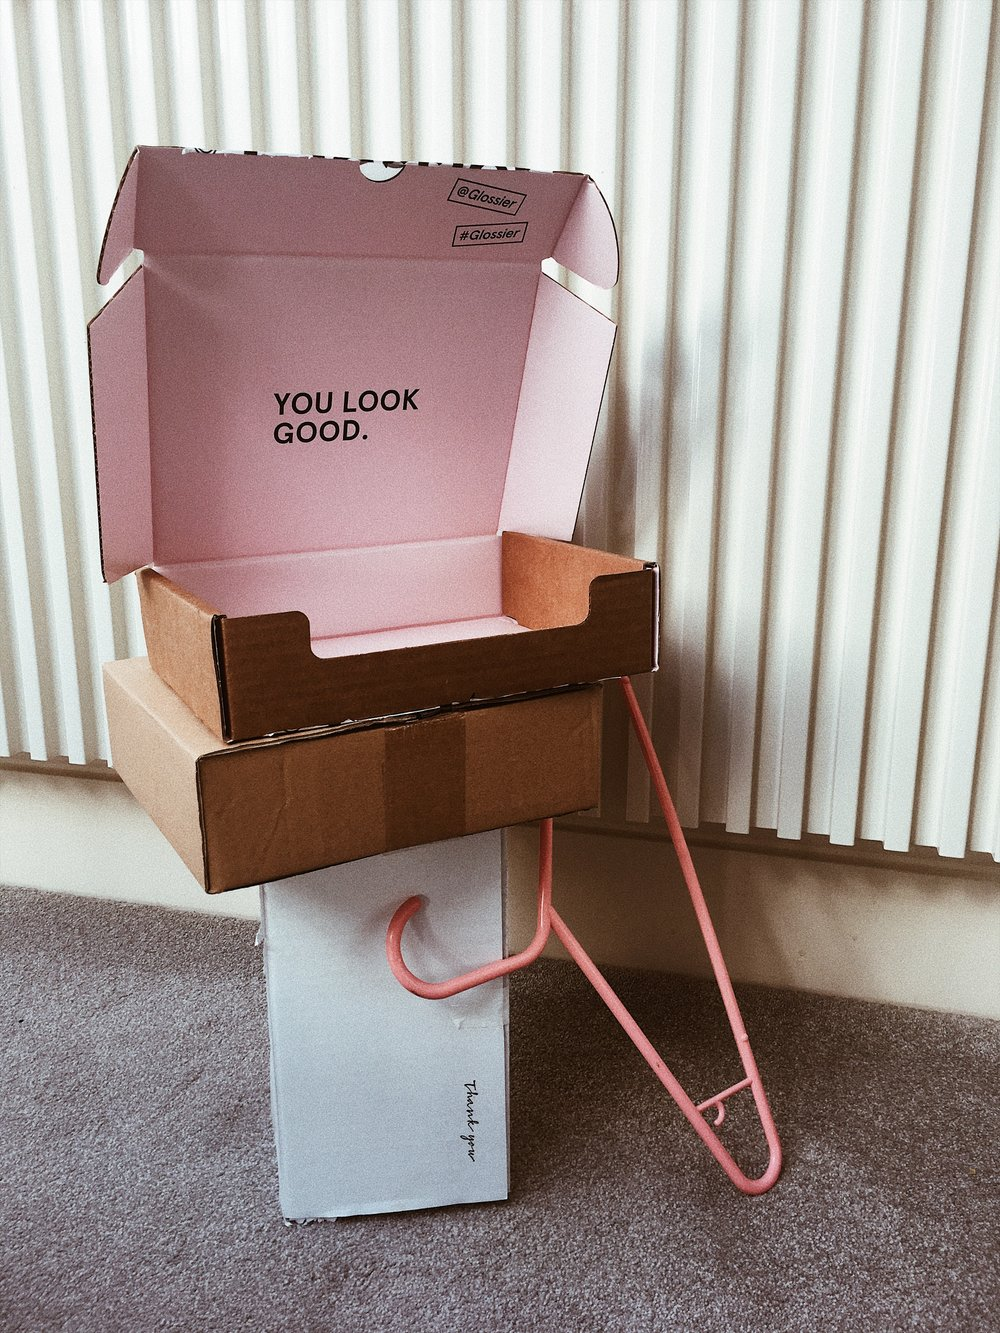 recycling-boxes-glossier-loolaa-desgins.JPG